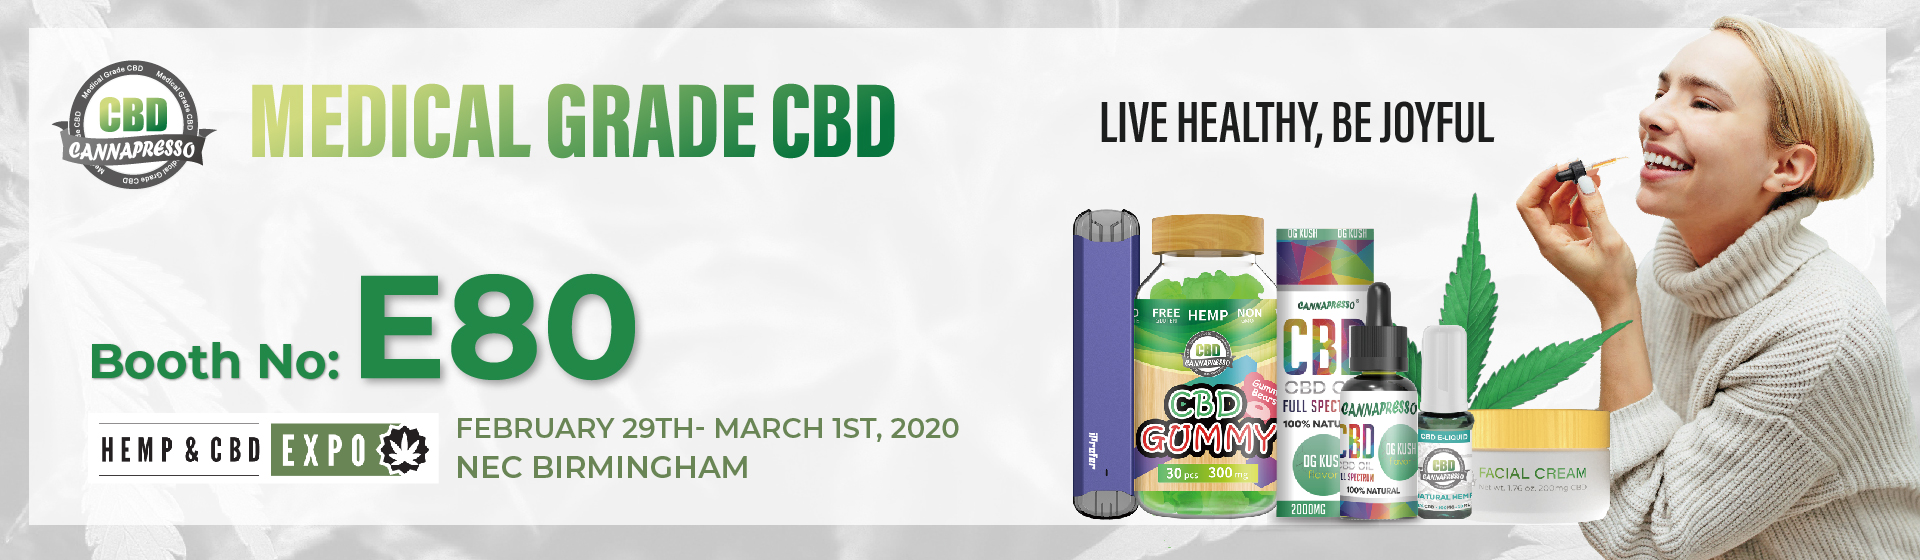 hemp and cbd expo invitation